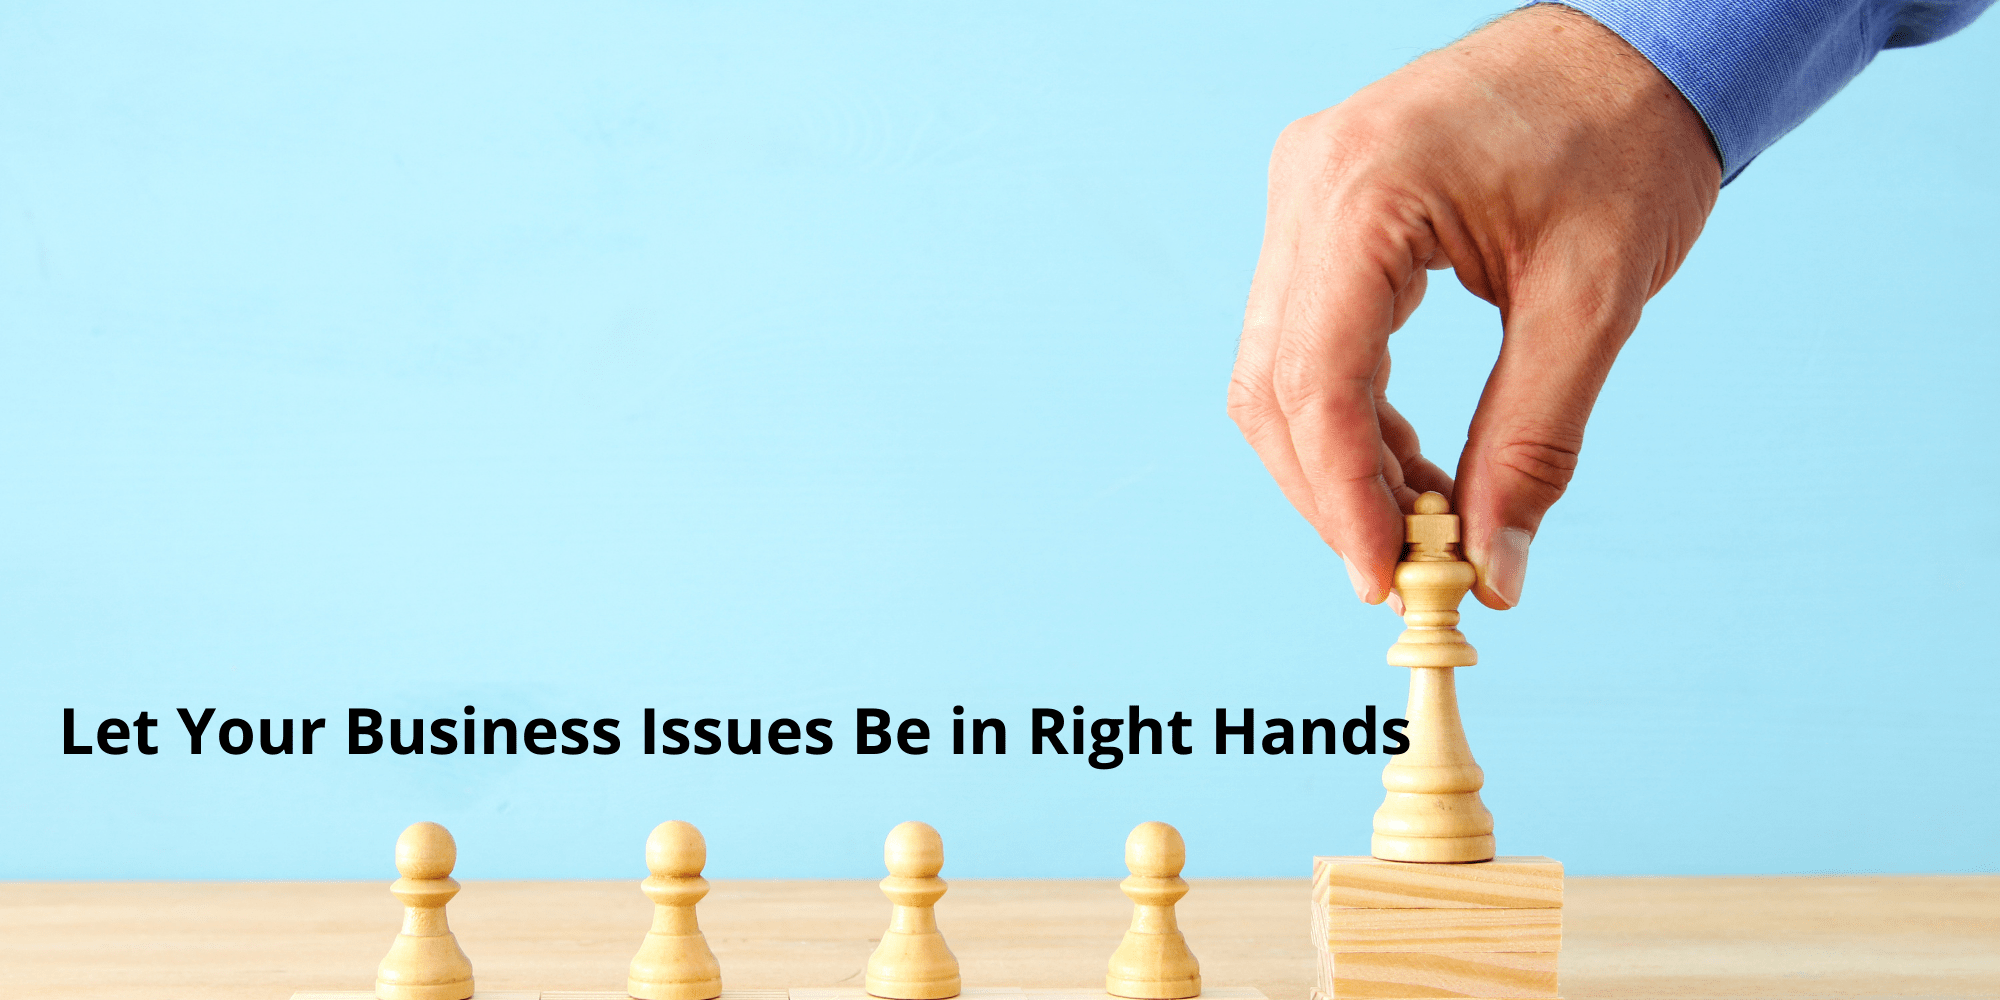 Let Your Business Issues Be in Safest Hands